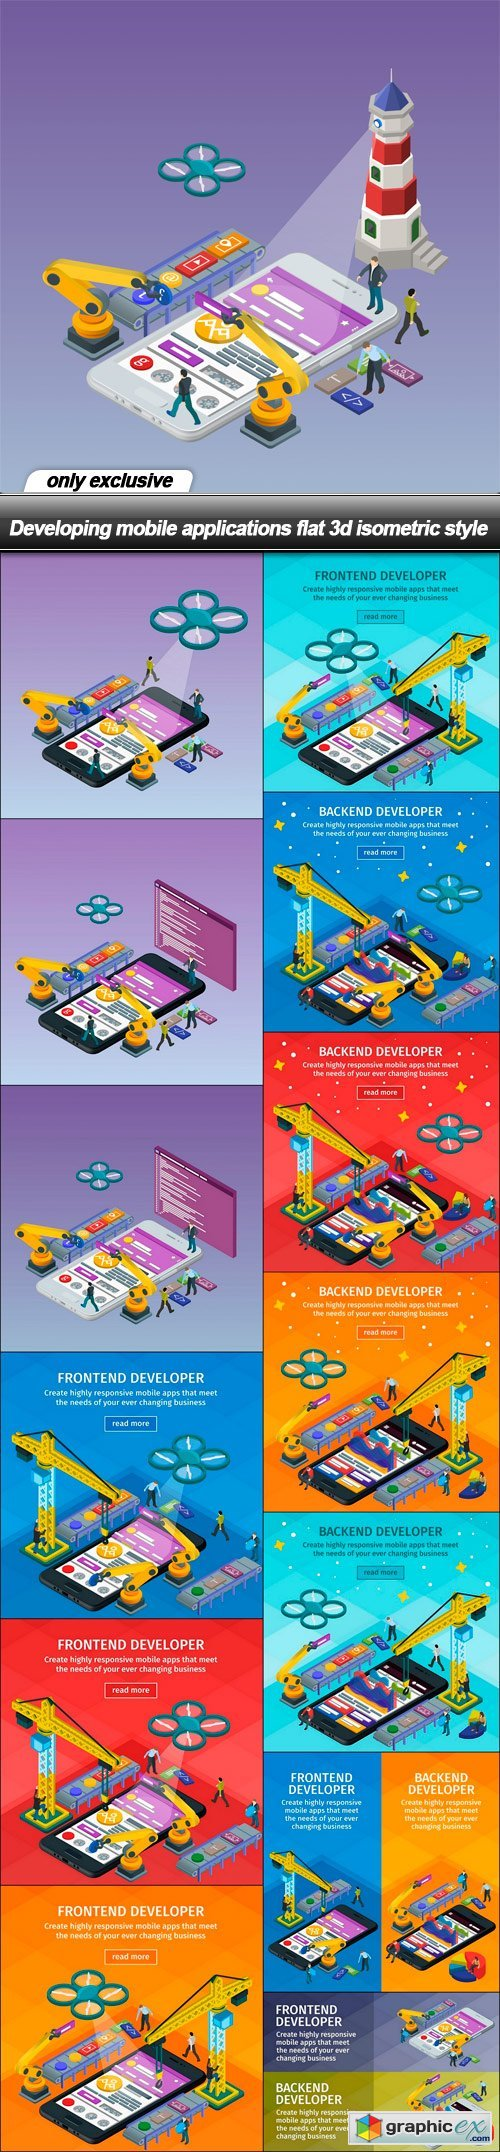 Developing mobile applications flat 3d isometric style - 14 EPS